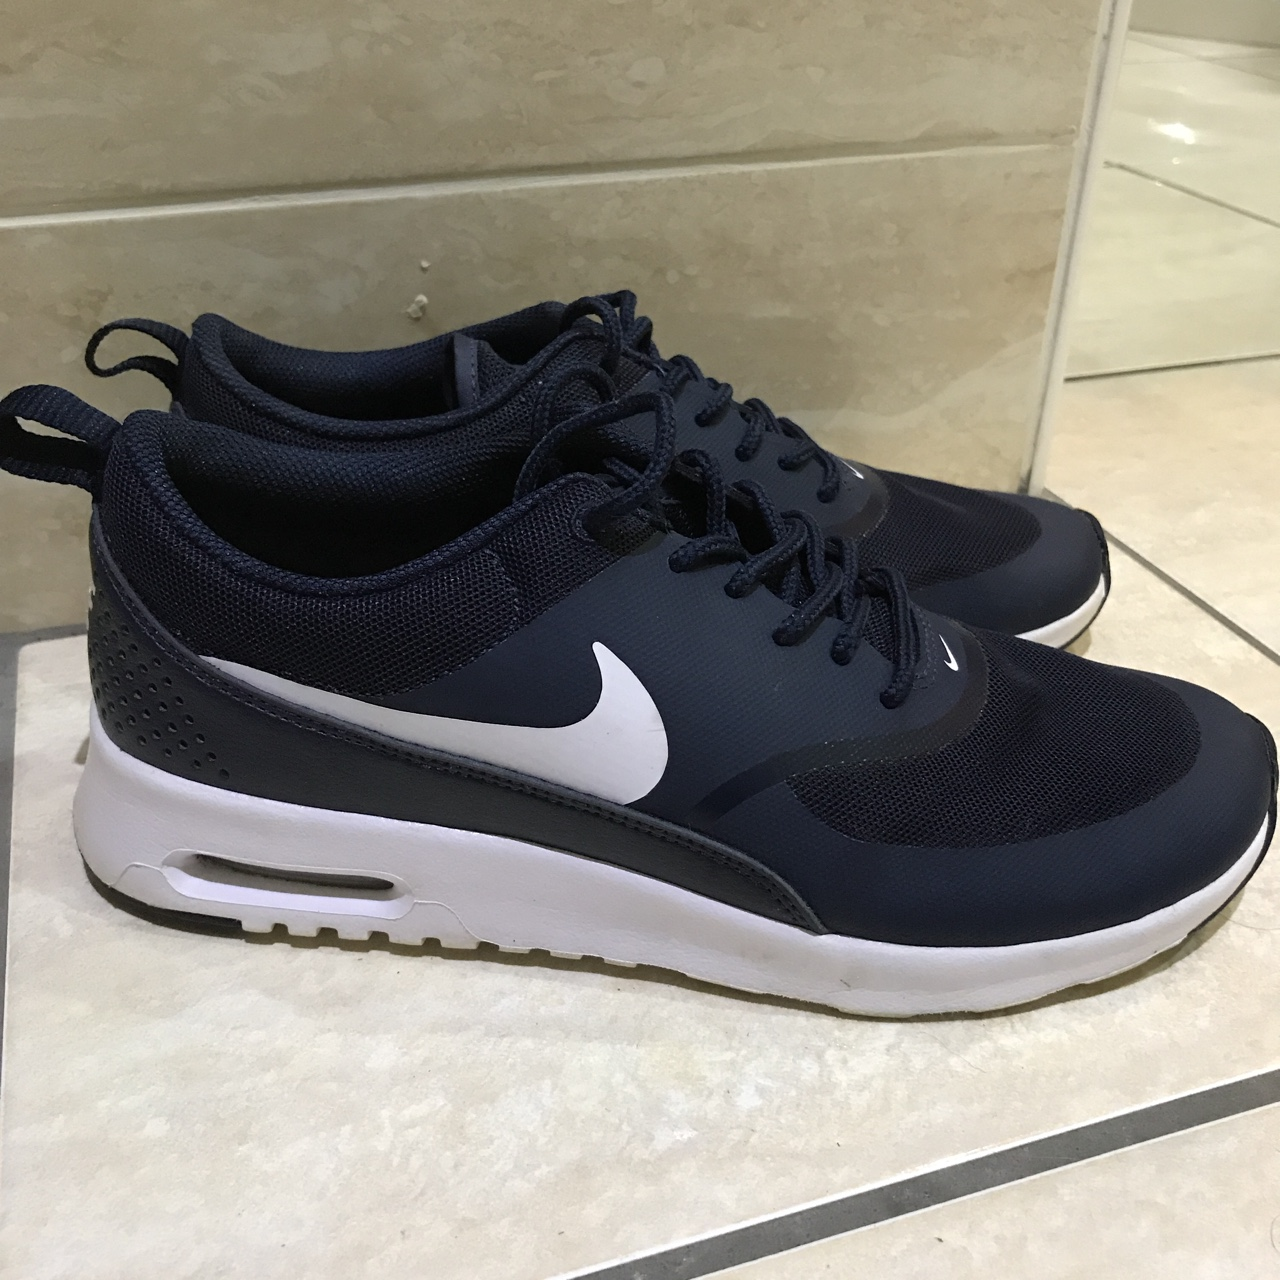 Nike air max Thea Navy size 4.5. Will fit a 4 or Depop